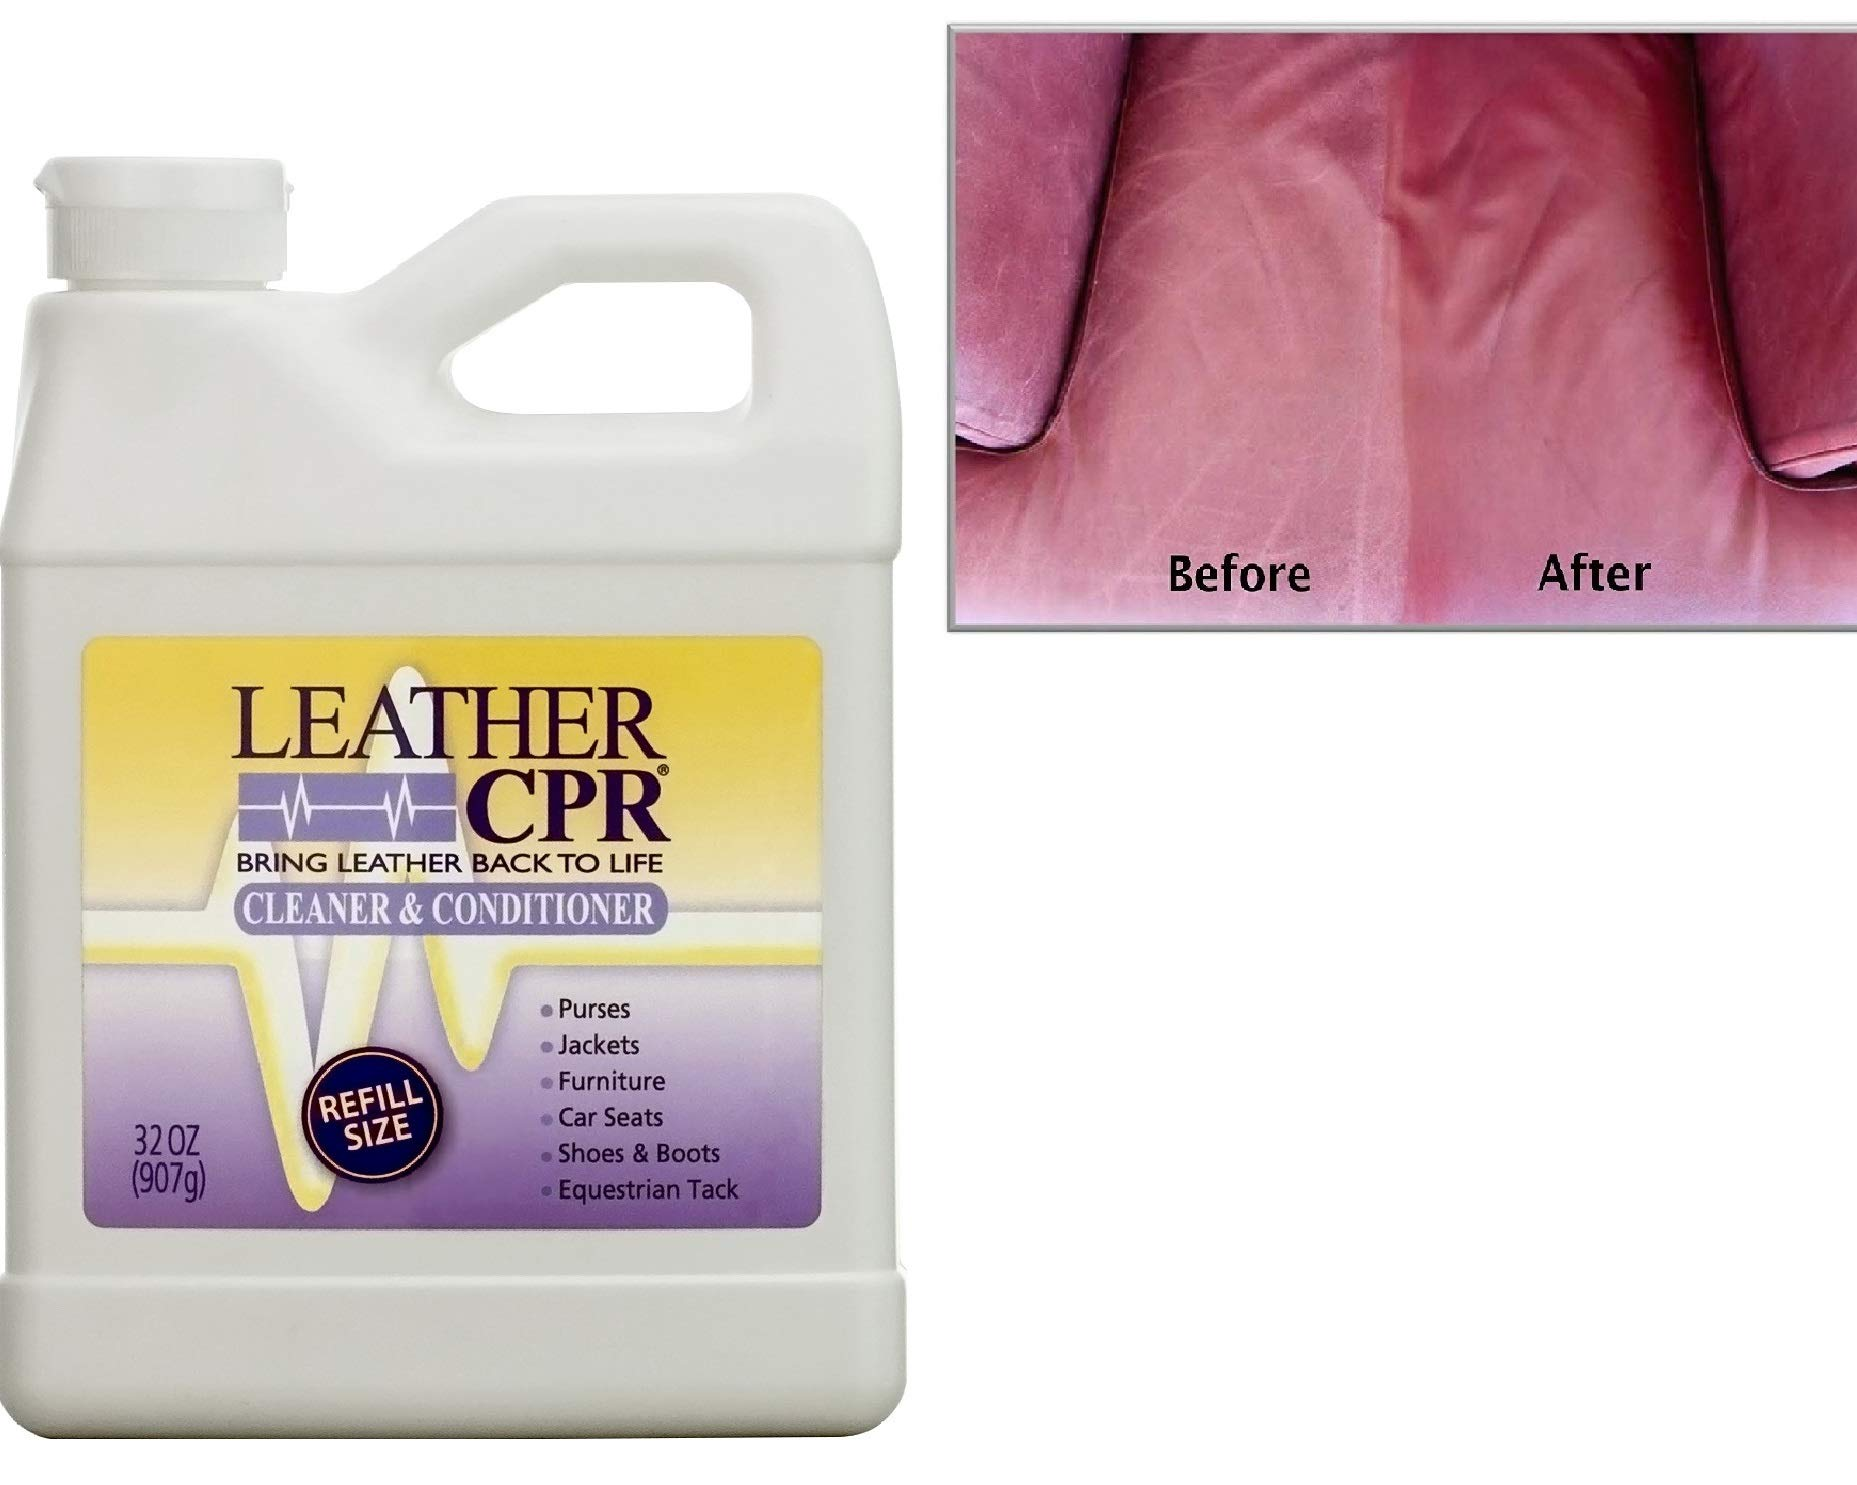 CPR Leather Cleaner & Conditioner (32 Ounce Bottle) Restores and Protects Leather Furniture, Purses, Car Seats, Jackets and More by CPR Cleaning Products